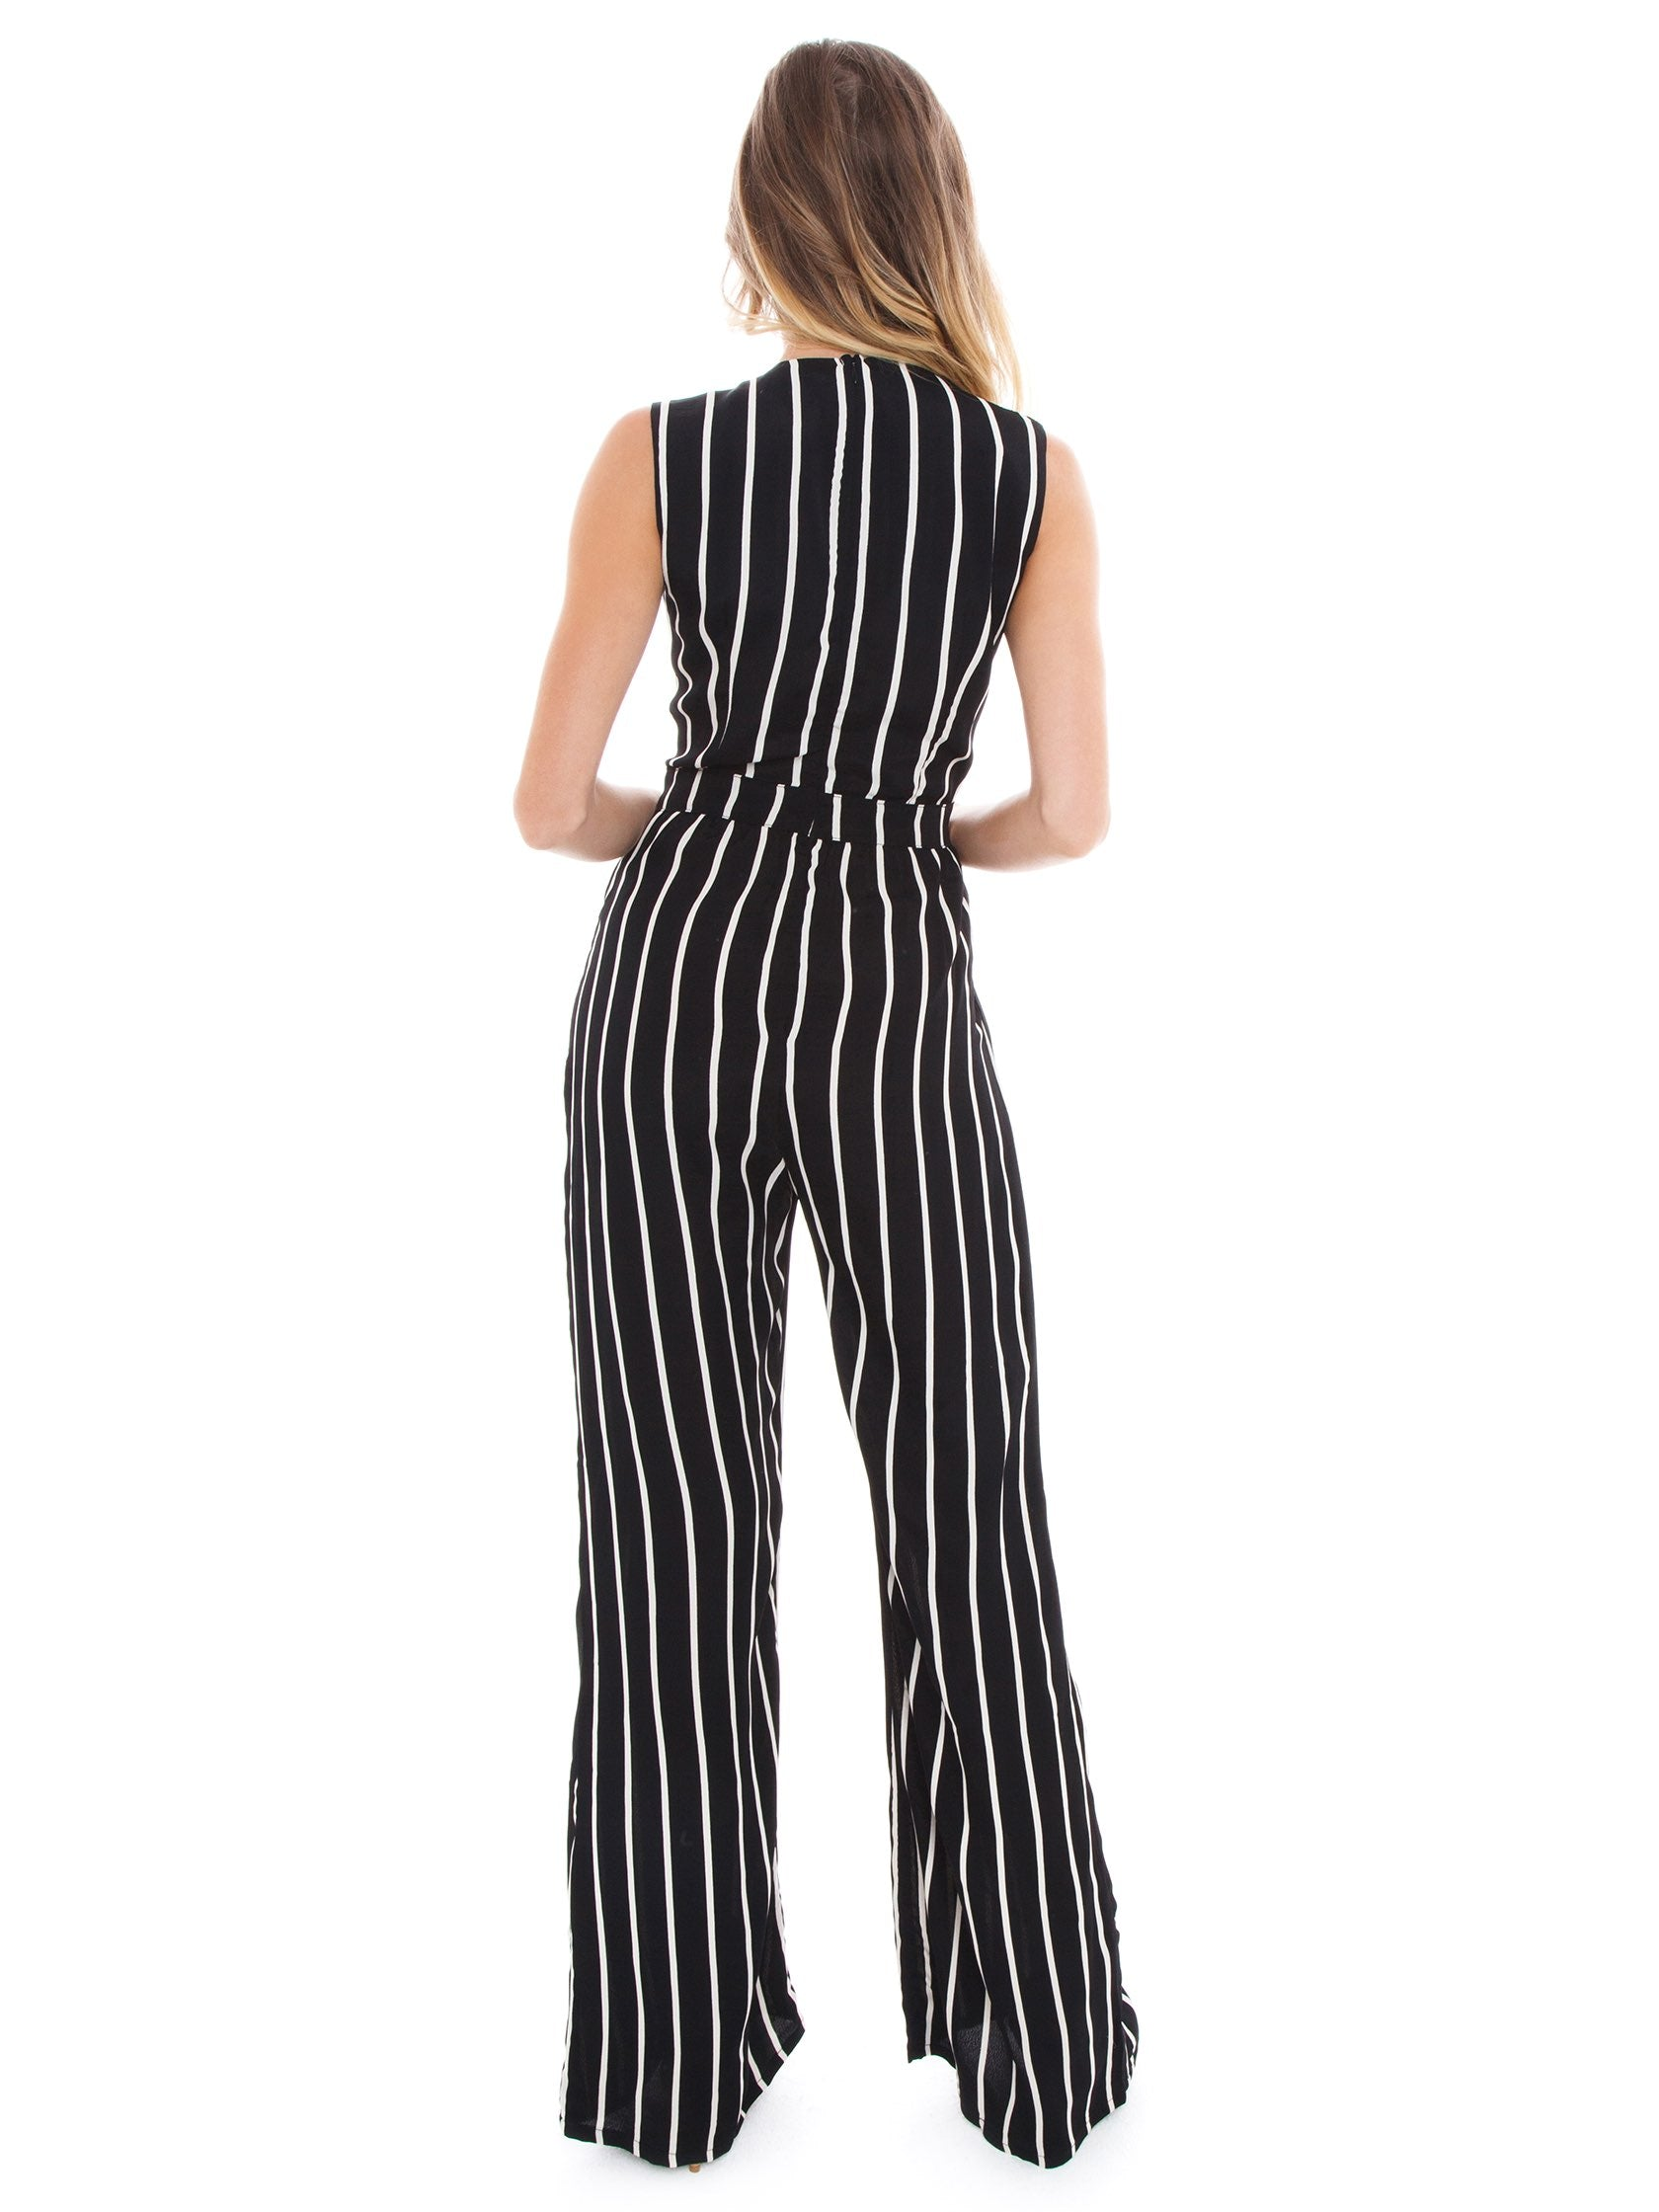 Women wearing a jumpsuit rental from Flynn Skye called Florence Jumper